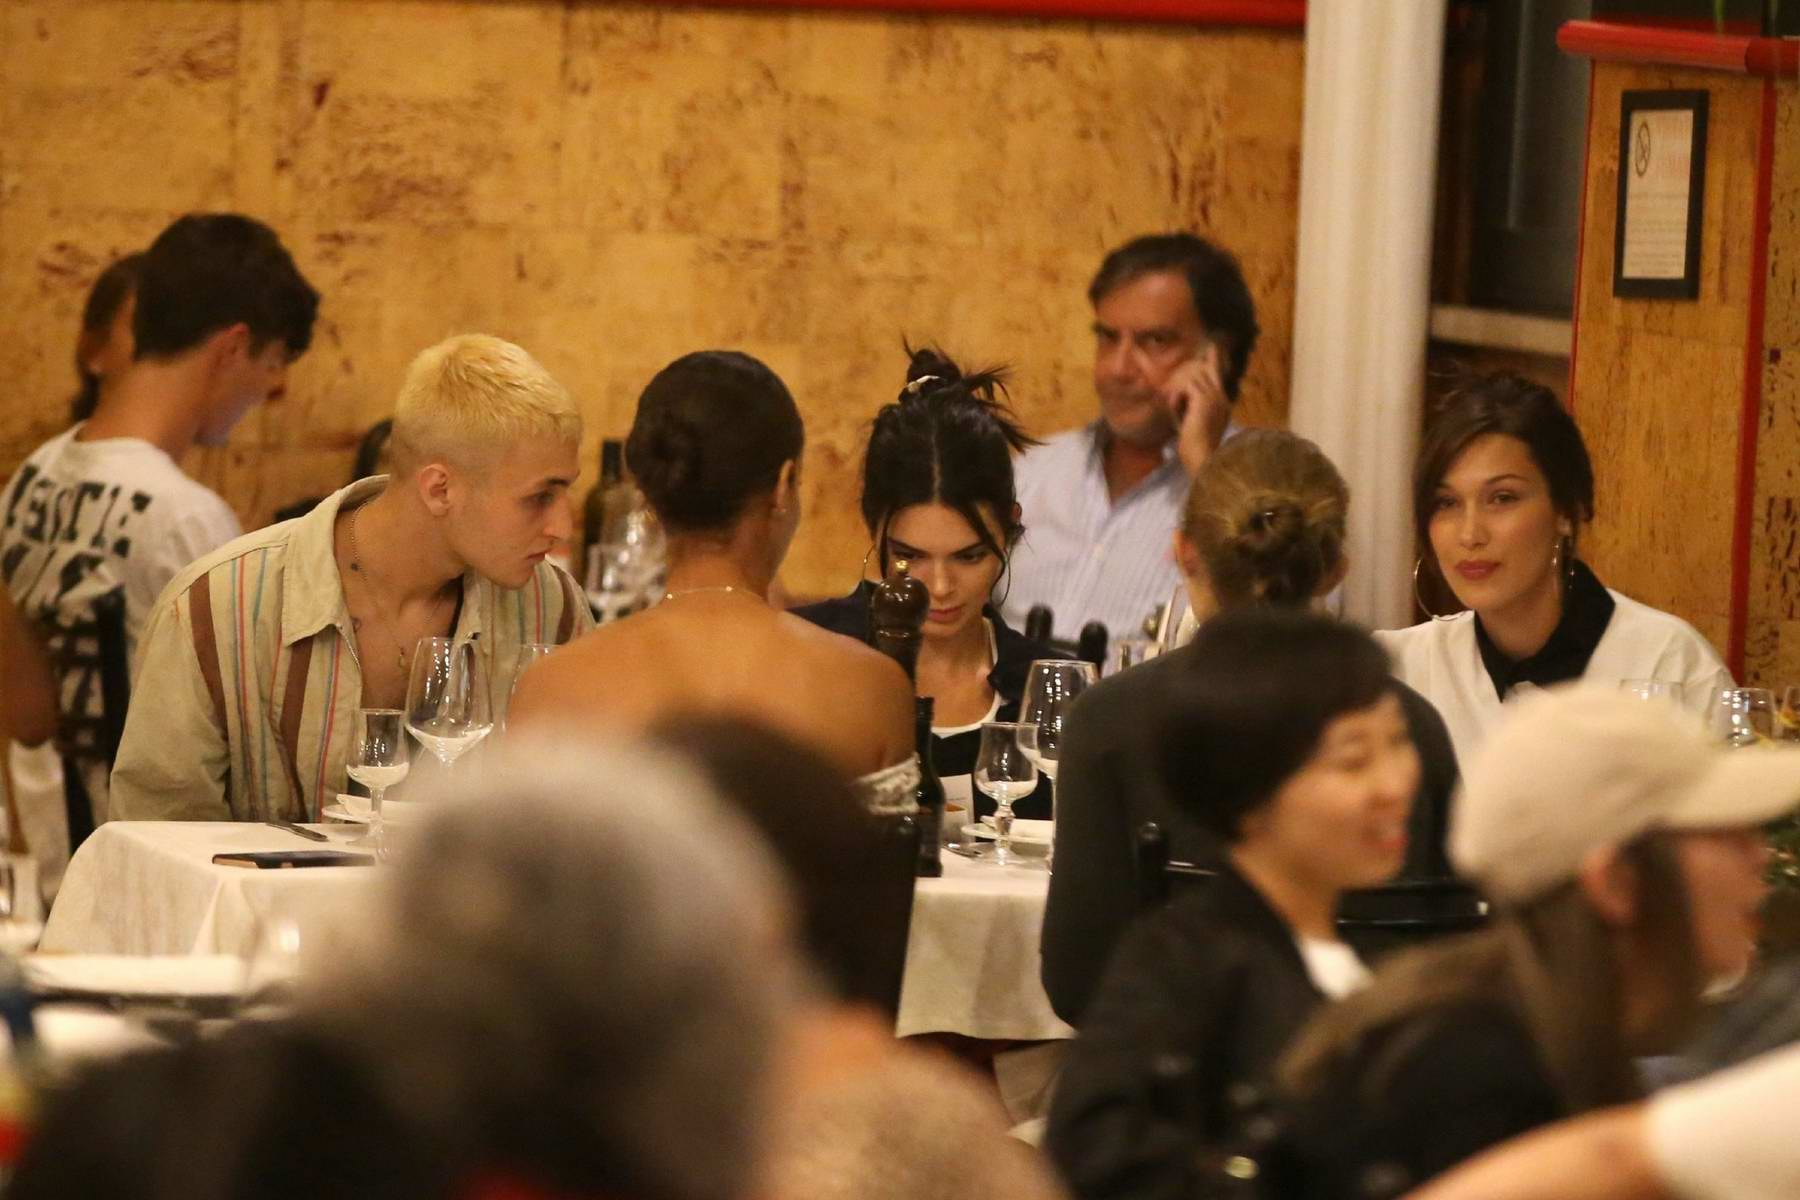 Kendall Jenner, Bella, Gigi and Anwar Hadid seen while having dinner together at a restaurant in Milan, Italy